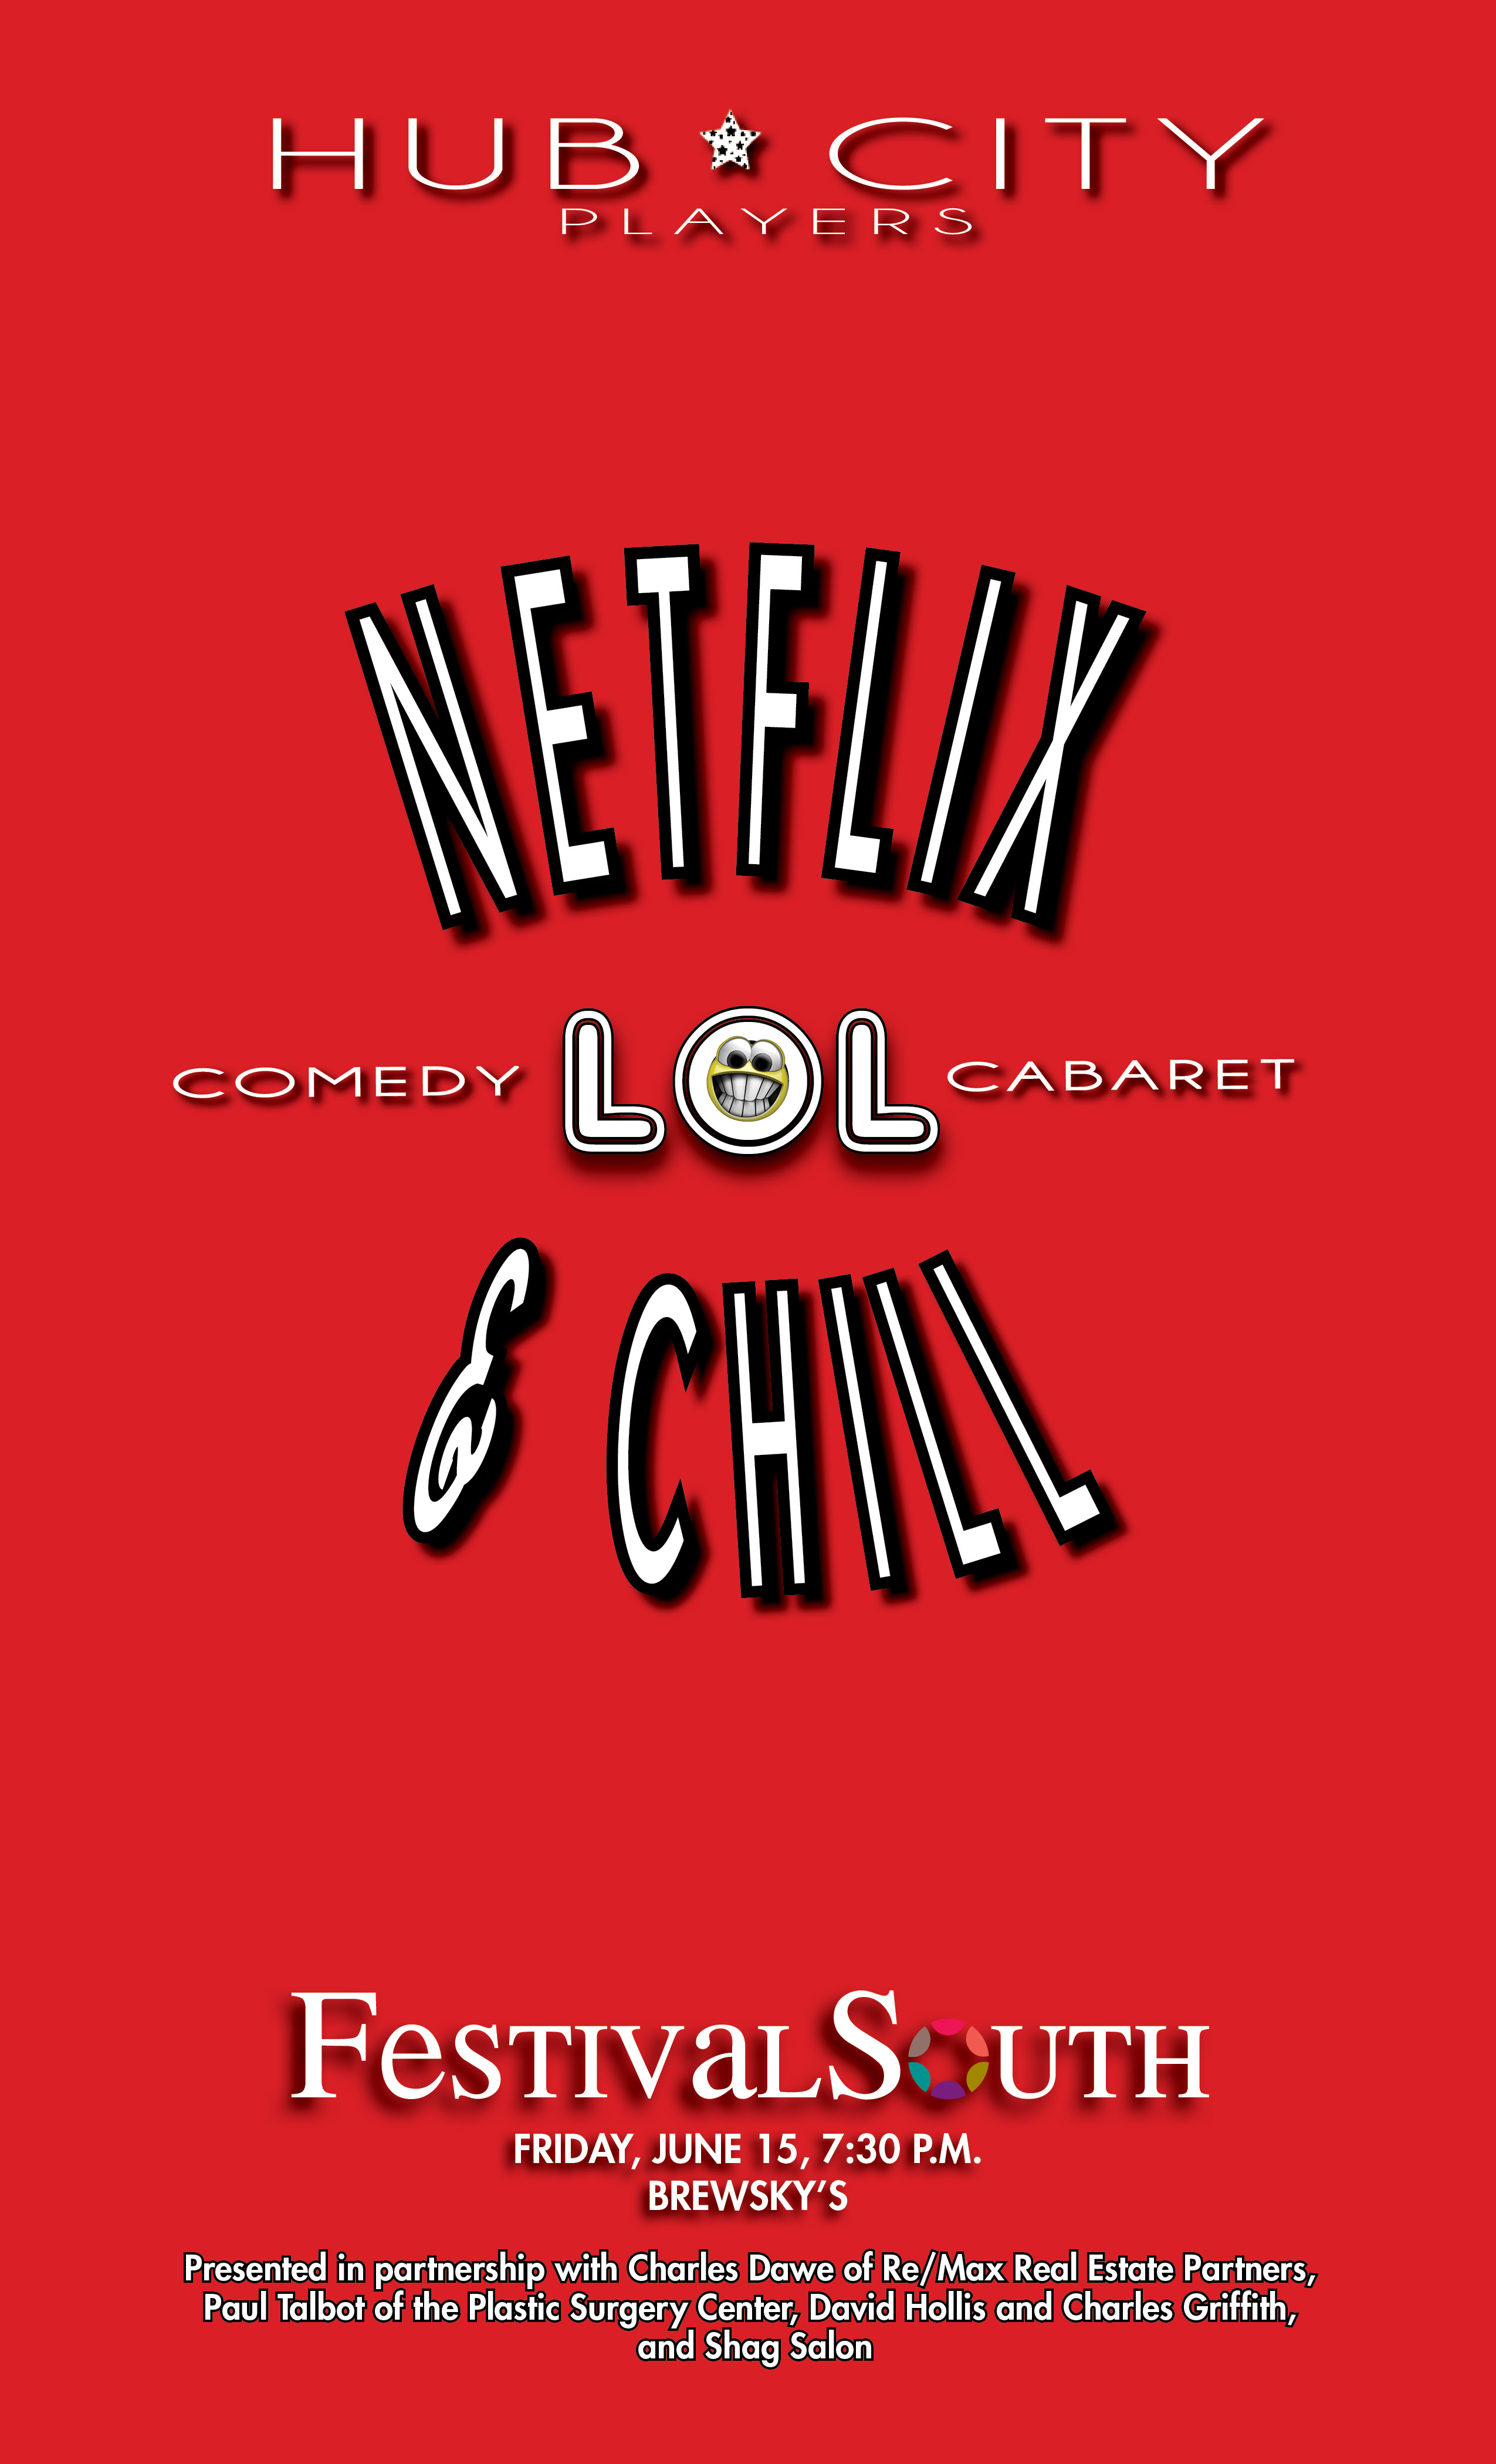 Lol Cabaret Netflix And Chill Feat The Hub City Players Festival South